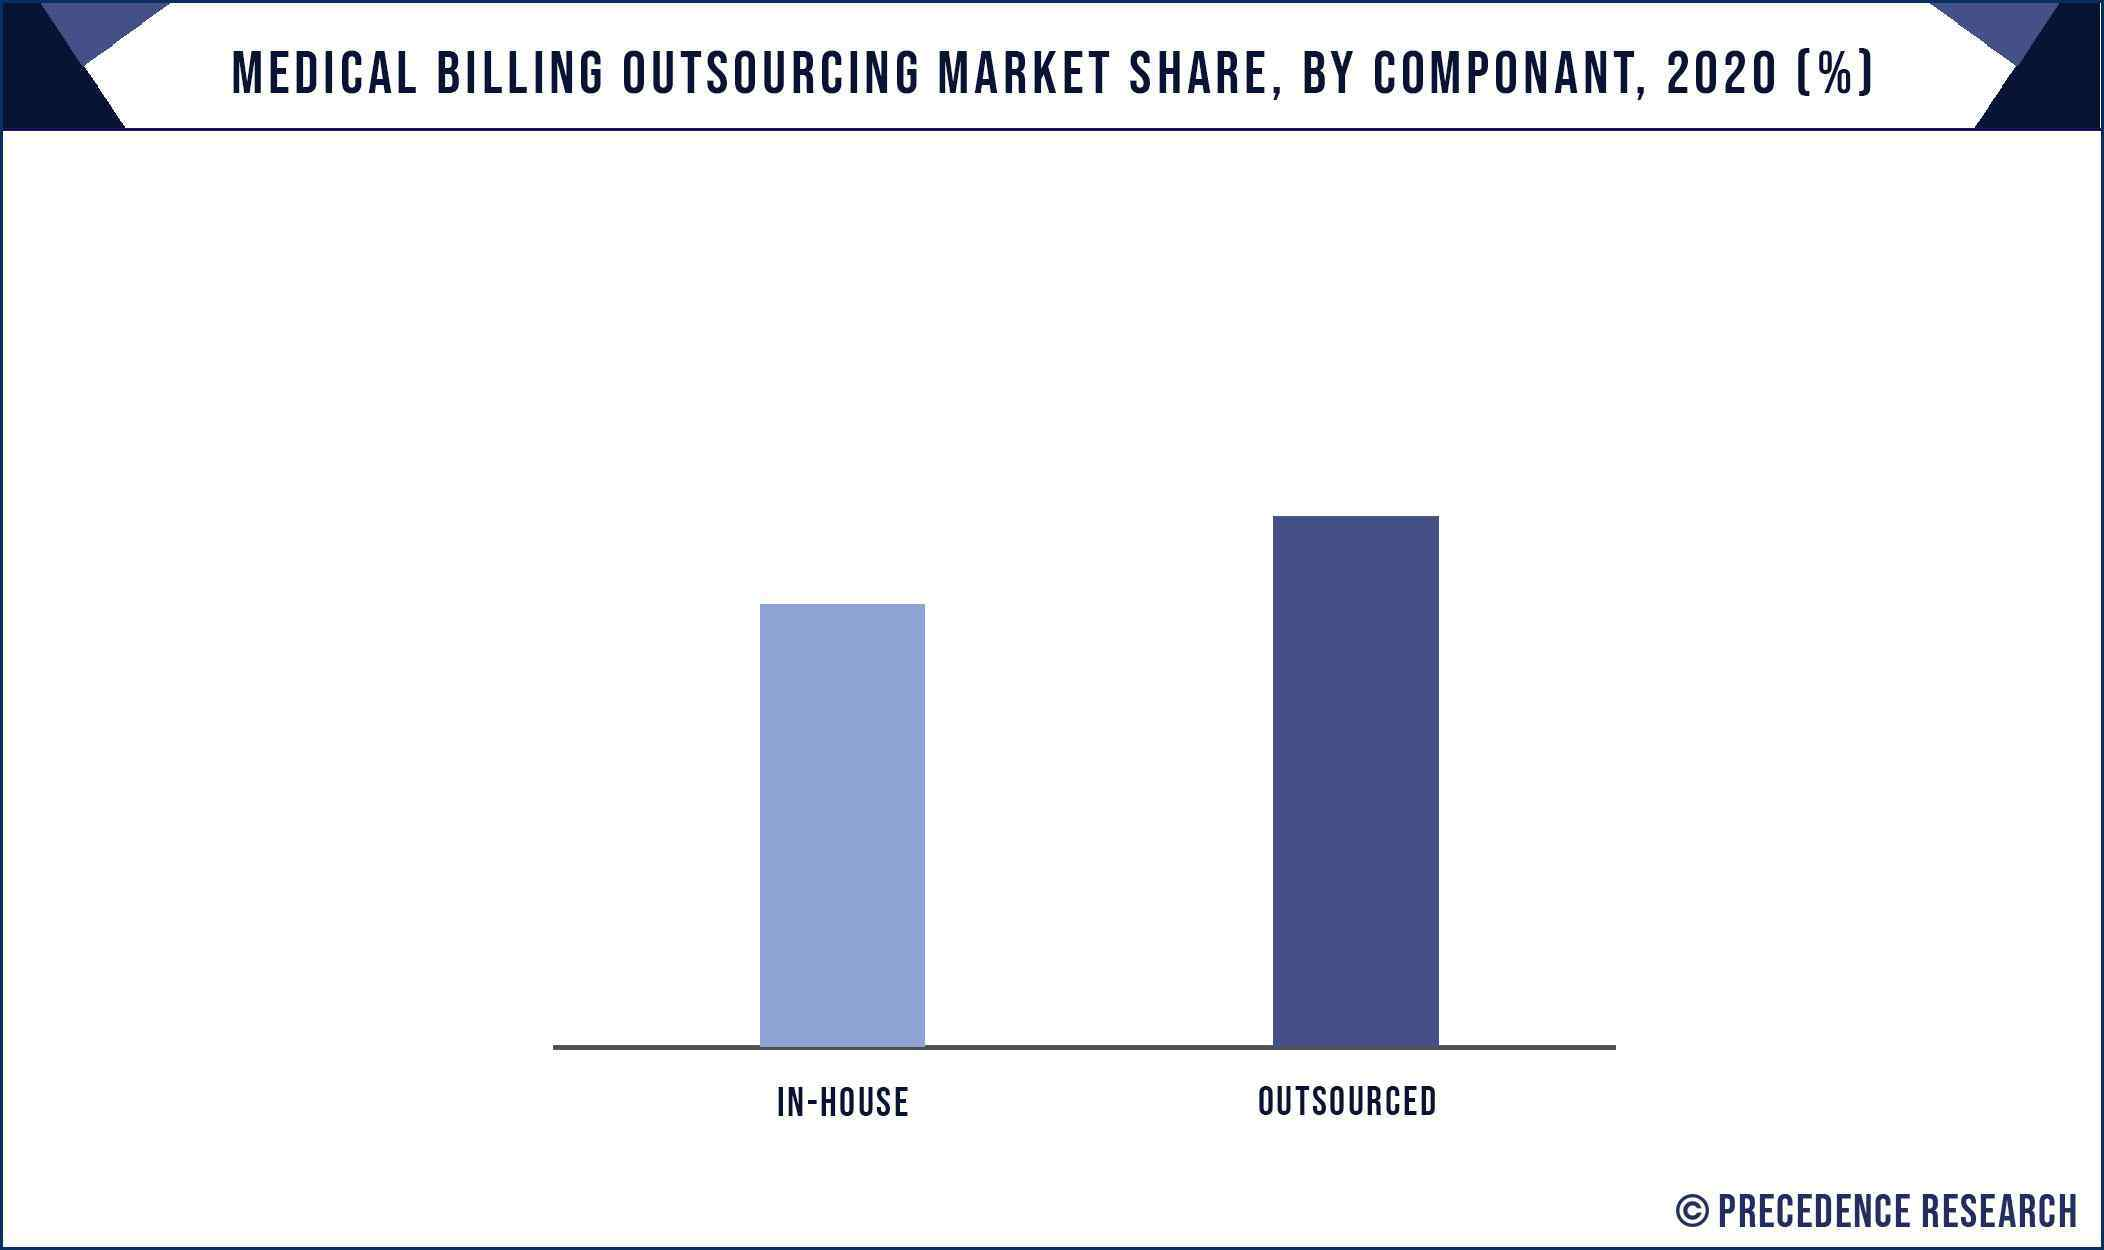 Medical Billing Outsourcing Market Share, By Component, 2020 (%)